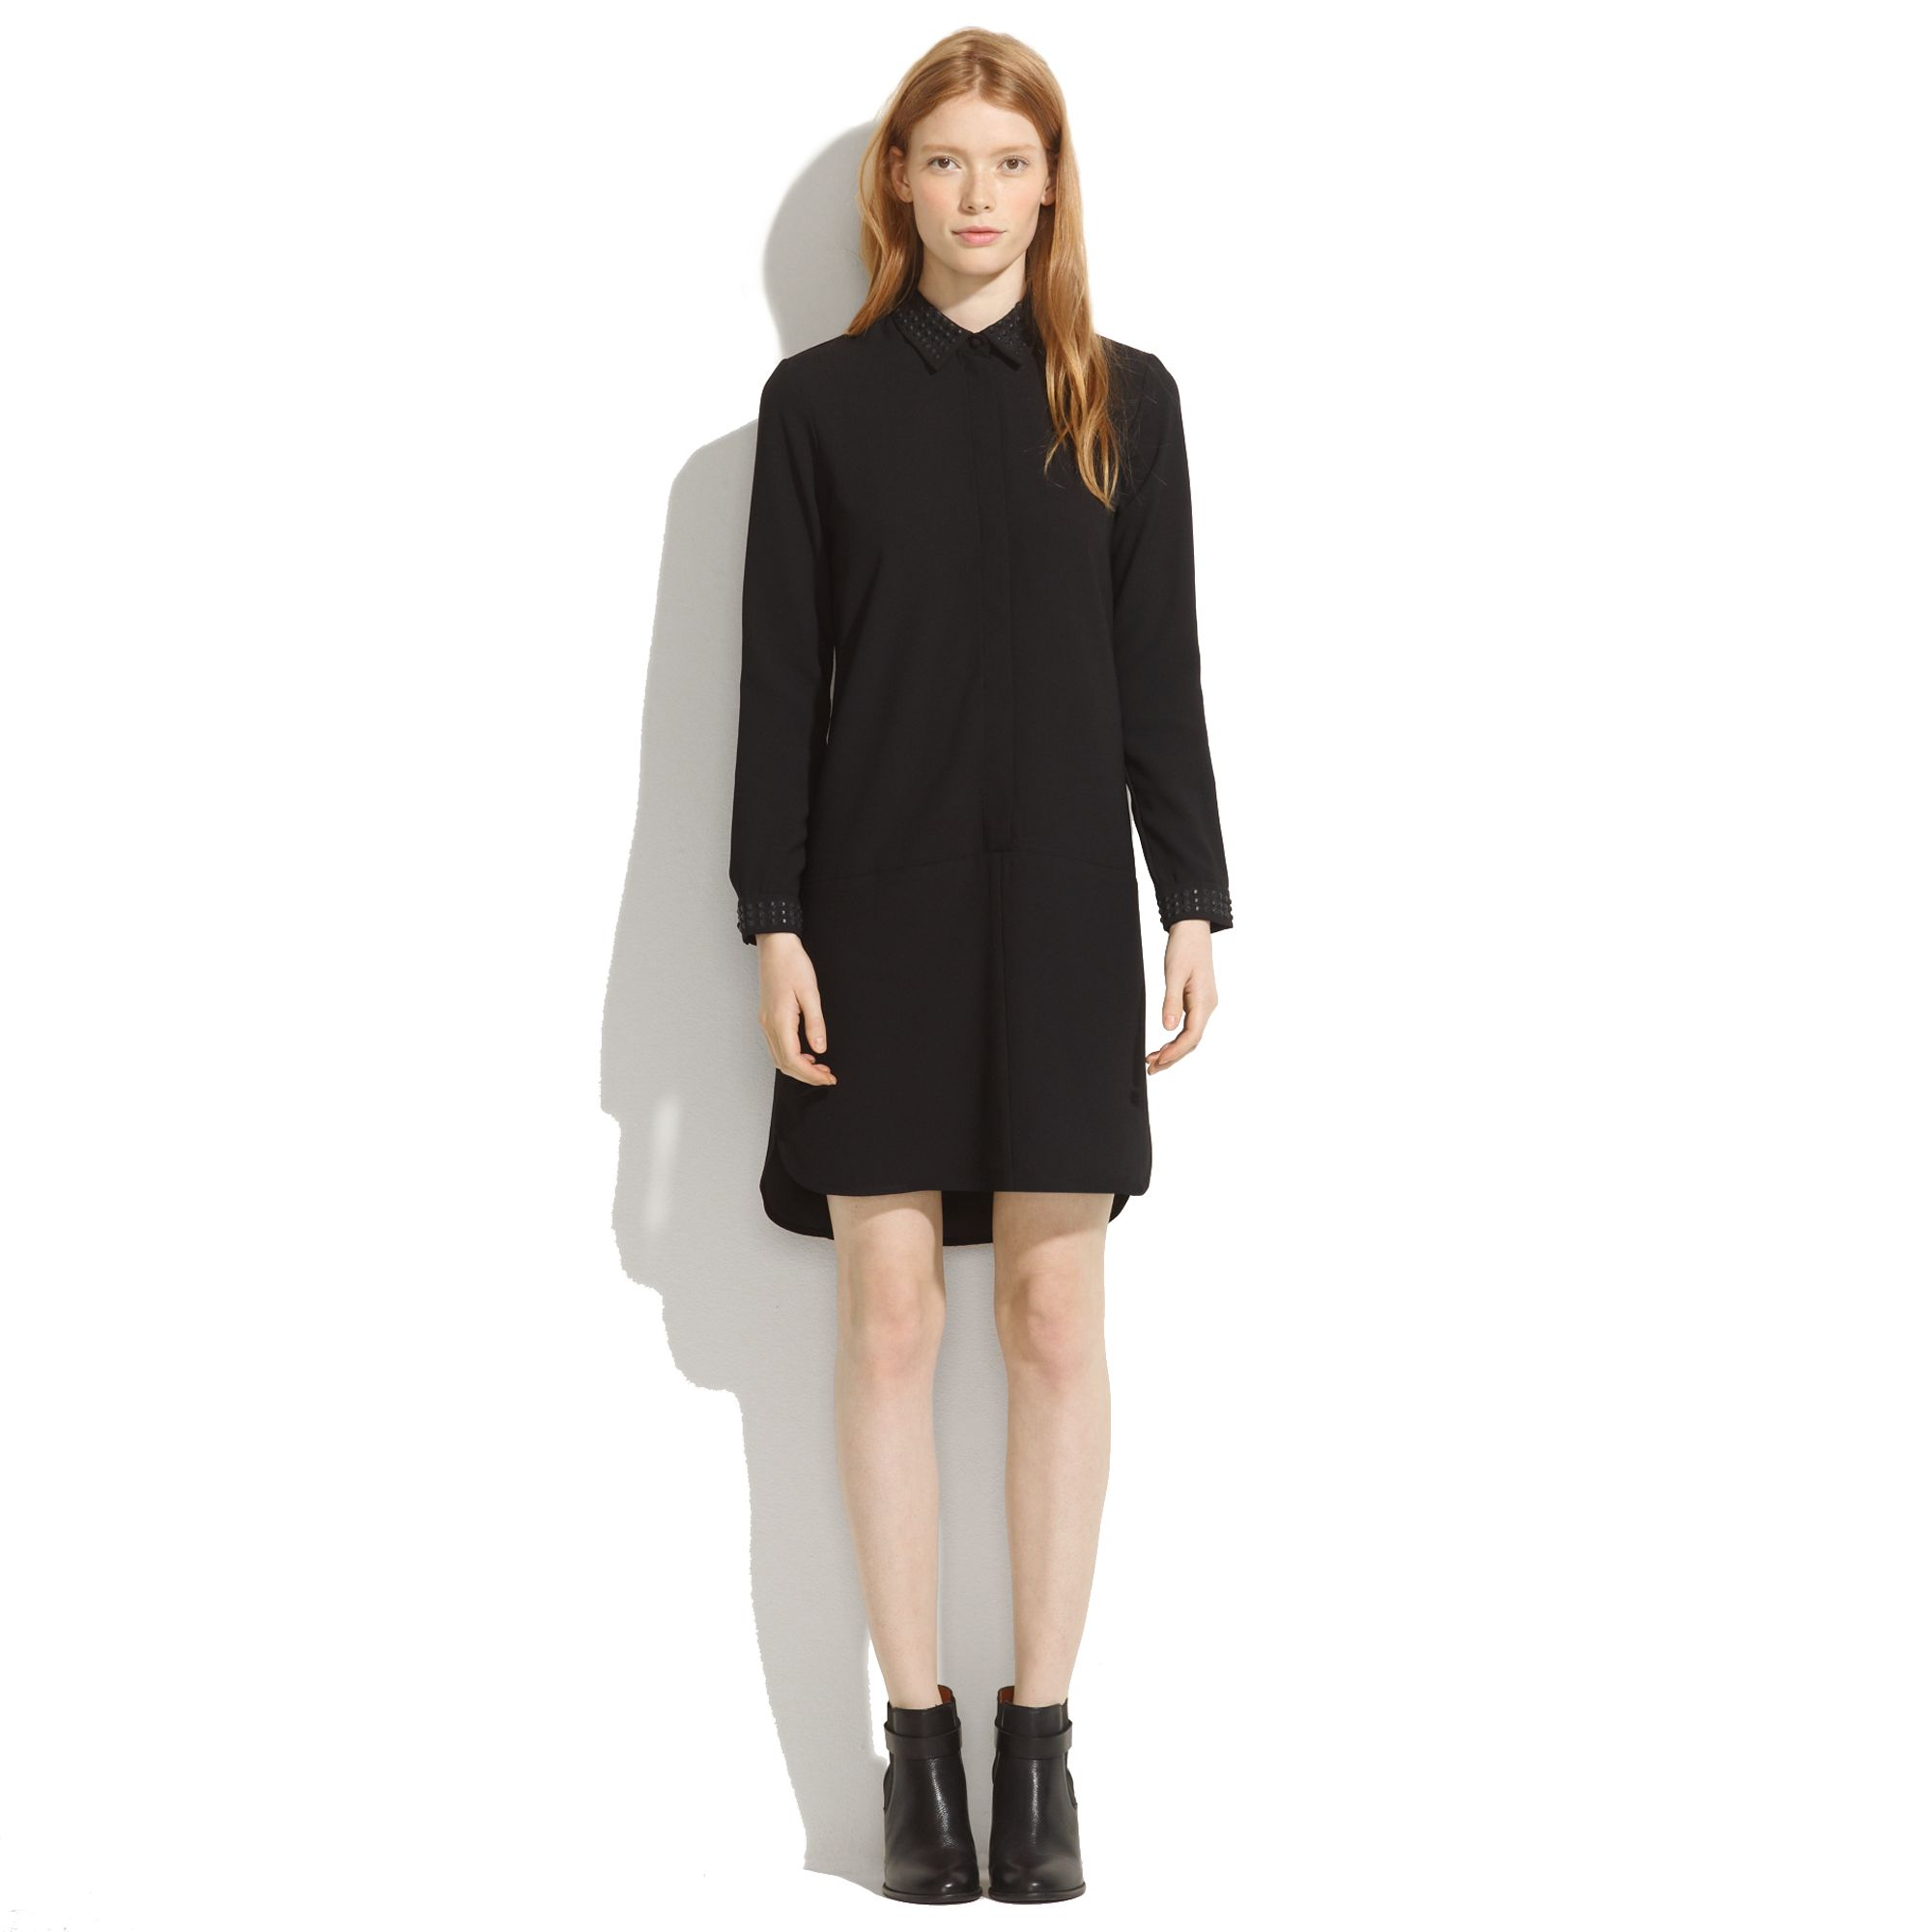 Madewell Long Sleeve Tunic Dress in Black - Lyst